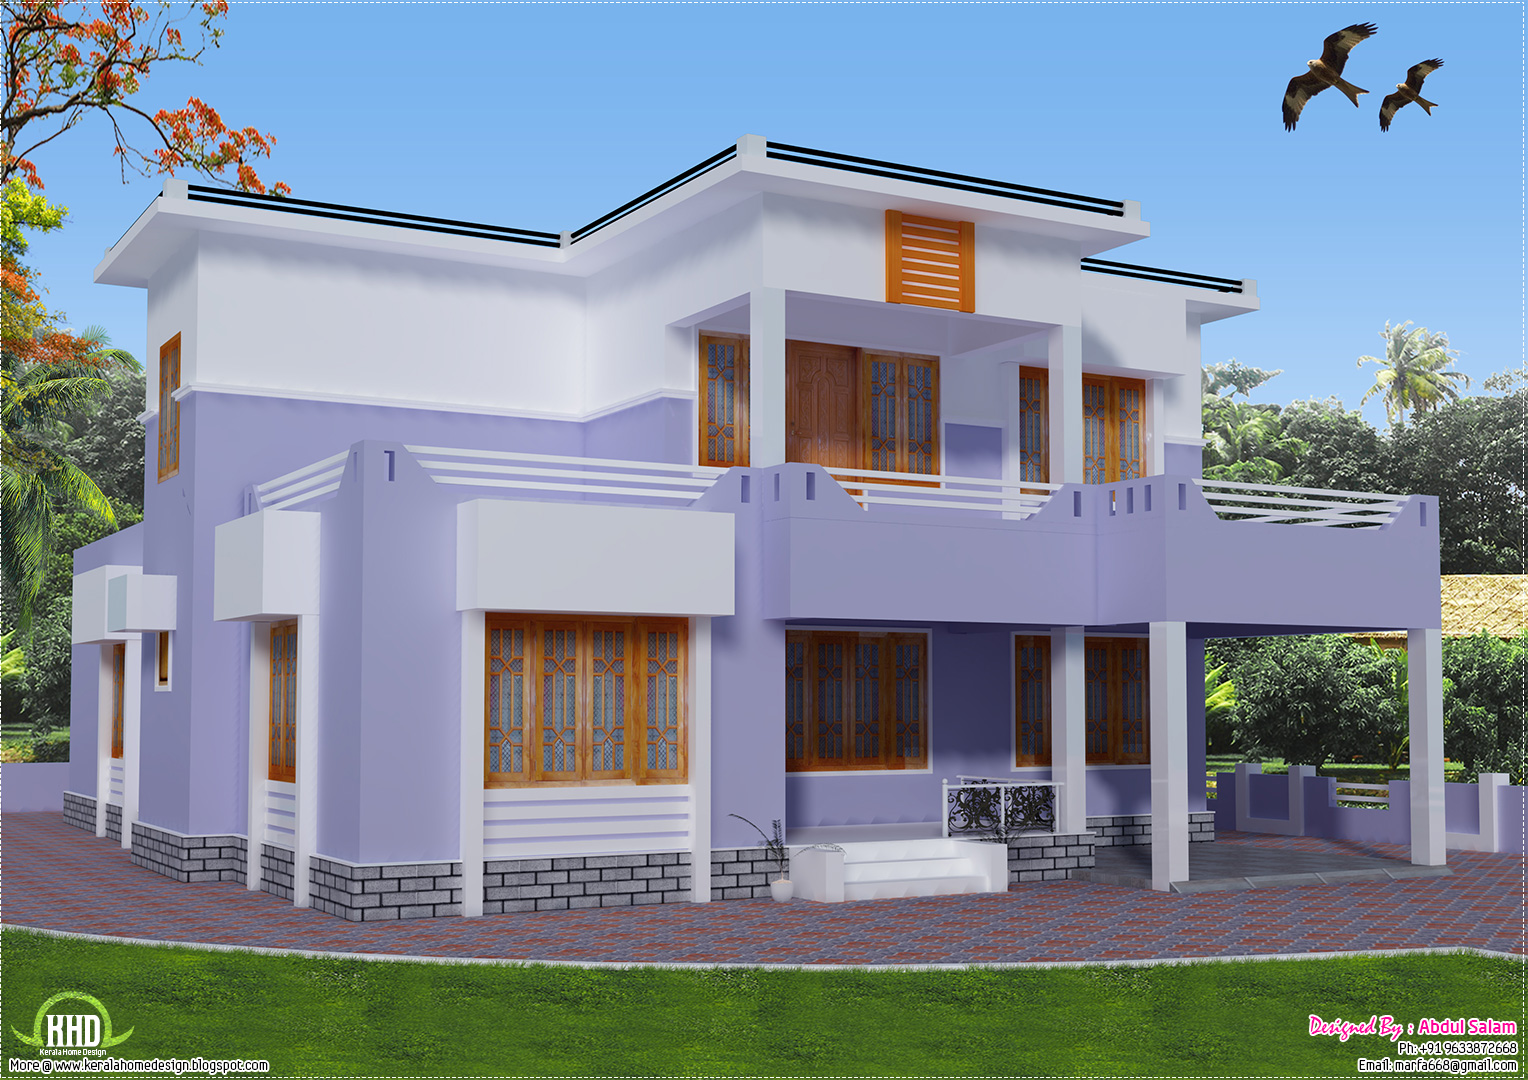 2419 sq.feet flat roof house design